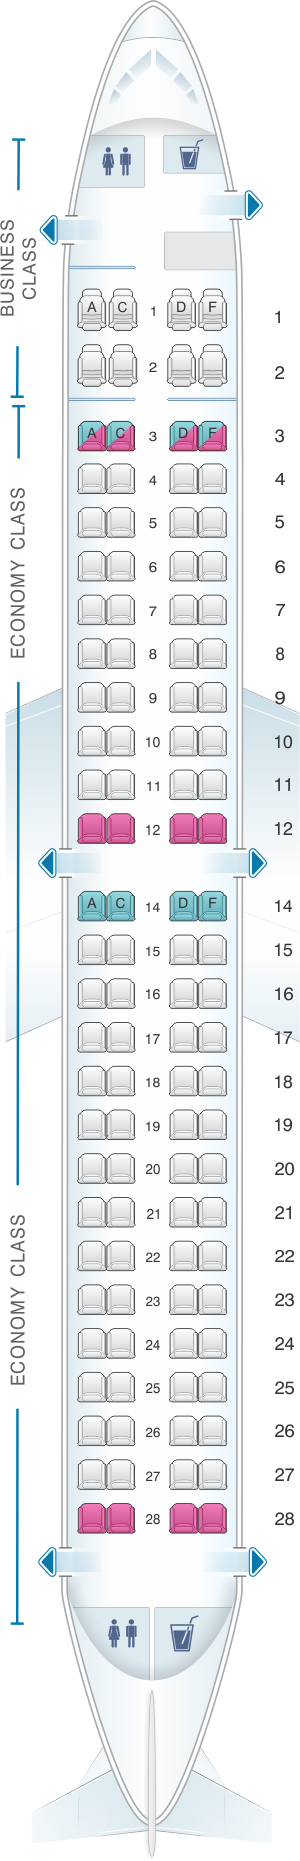 Seat map for Bulgaria Air Embraer 190